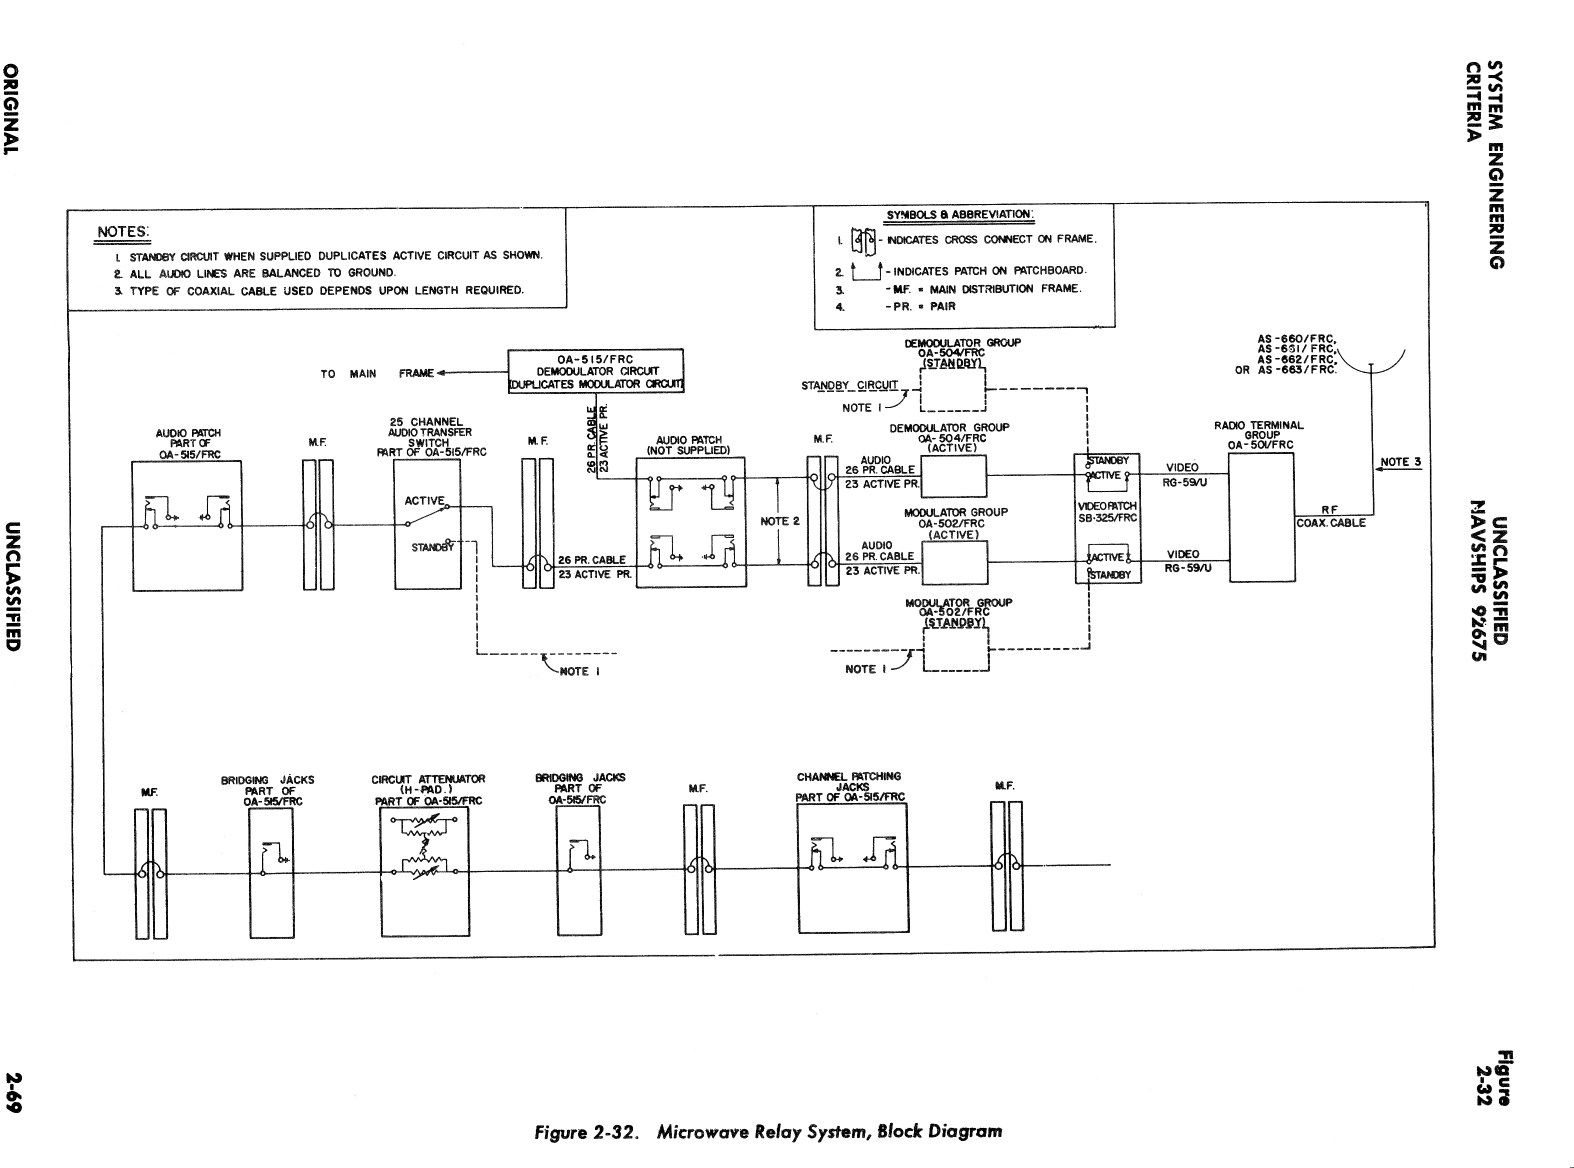 Fm Stereo Transmitter And Receiver Block Diagram: US Navy Communications - Microwave Systems for Inter-site linksrh:virhistory.com,Design